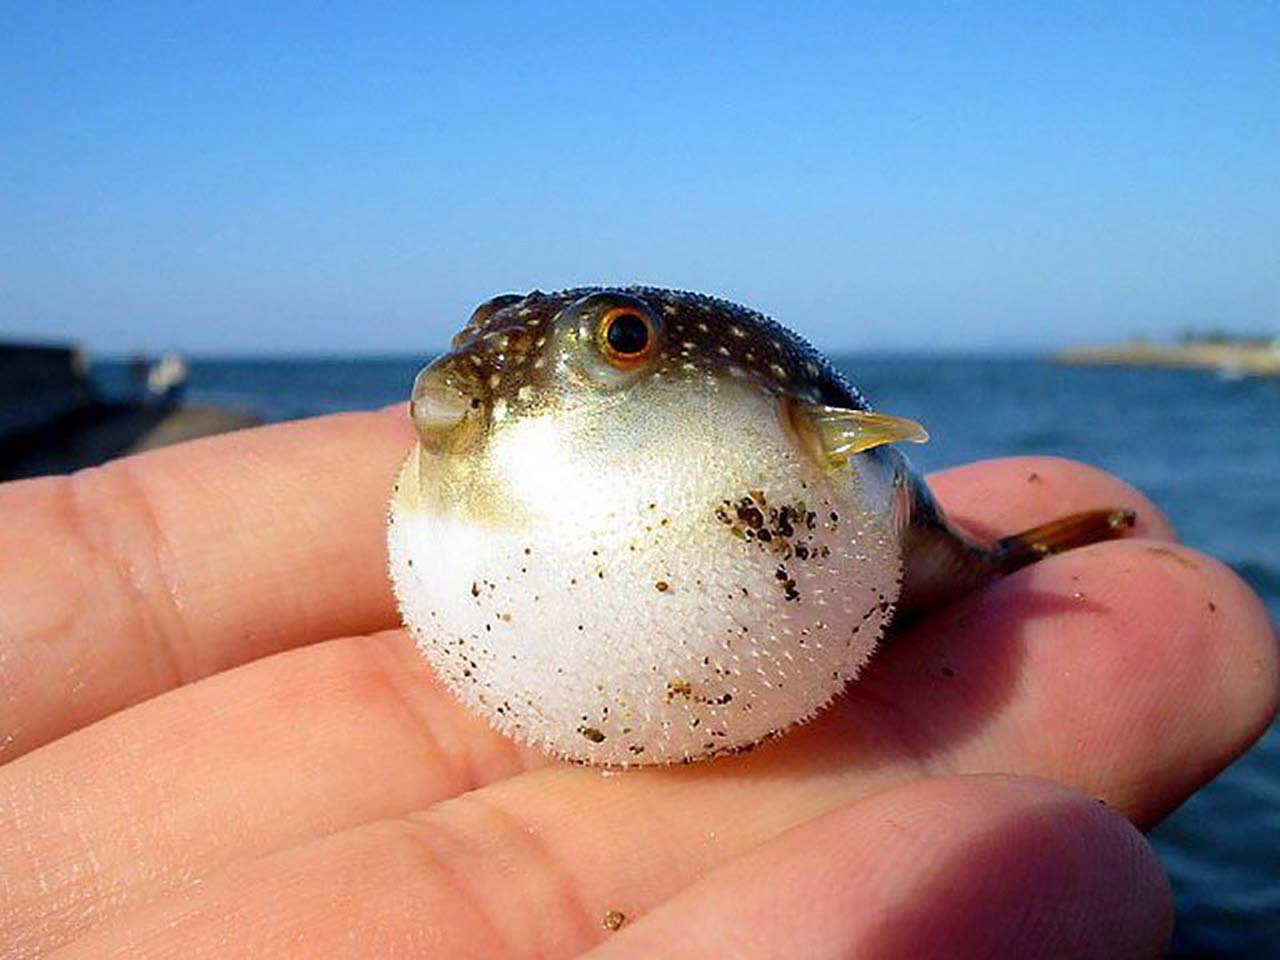 27 Adorable & Tiny Animals That Are Too Cute To Handle #15: Puffer Fish